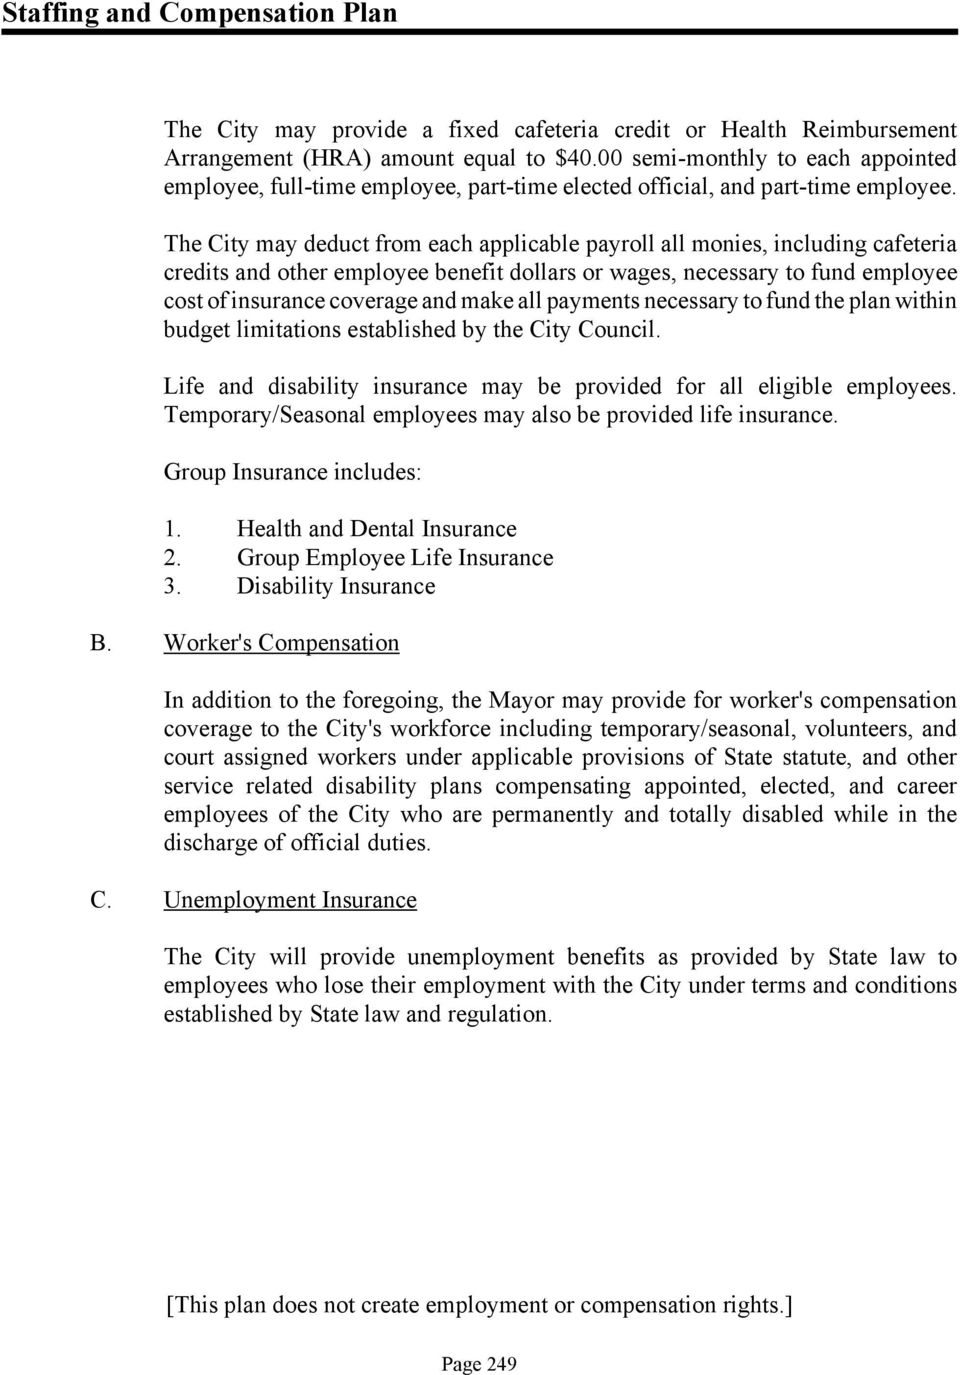 The City may deduct from each applicable payroll all monies, including cafeteria credits and other employee benefit dollars or wages, necessary to fund employee cost of insurance coverage and make